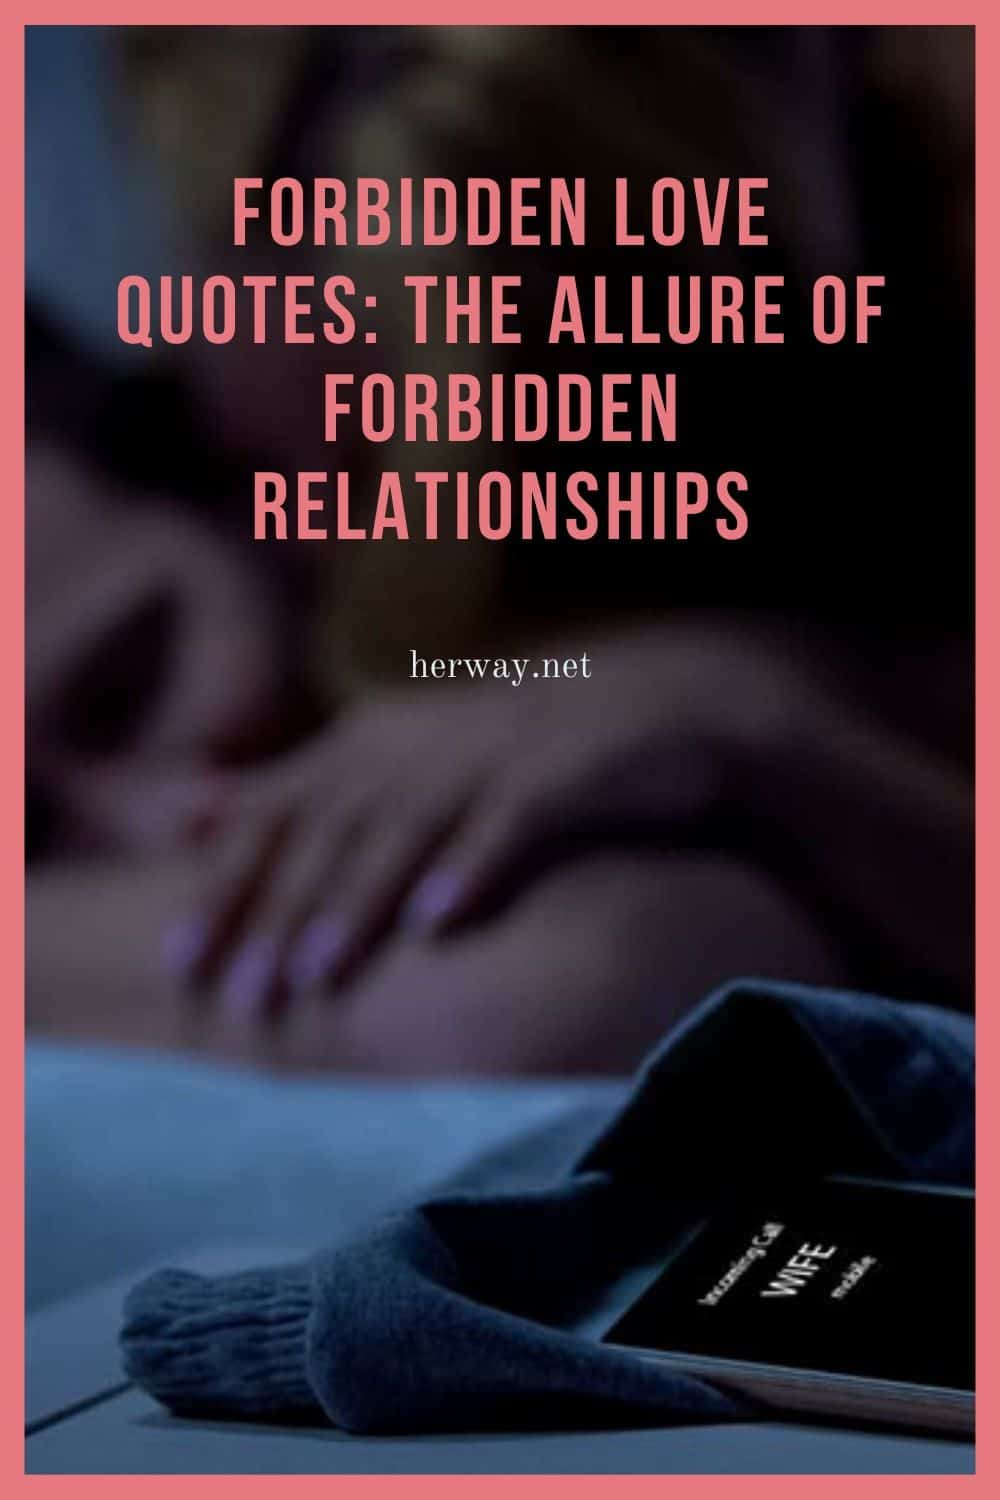 Forbidden Love Quotes: The Allure Of Forbidden Relationships